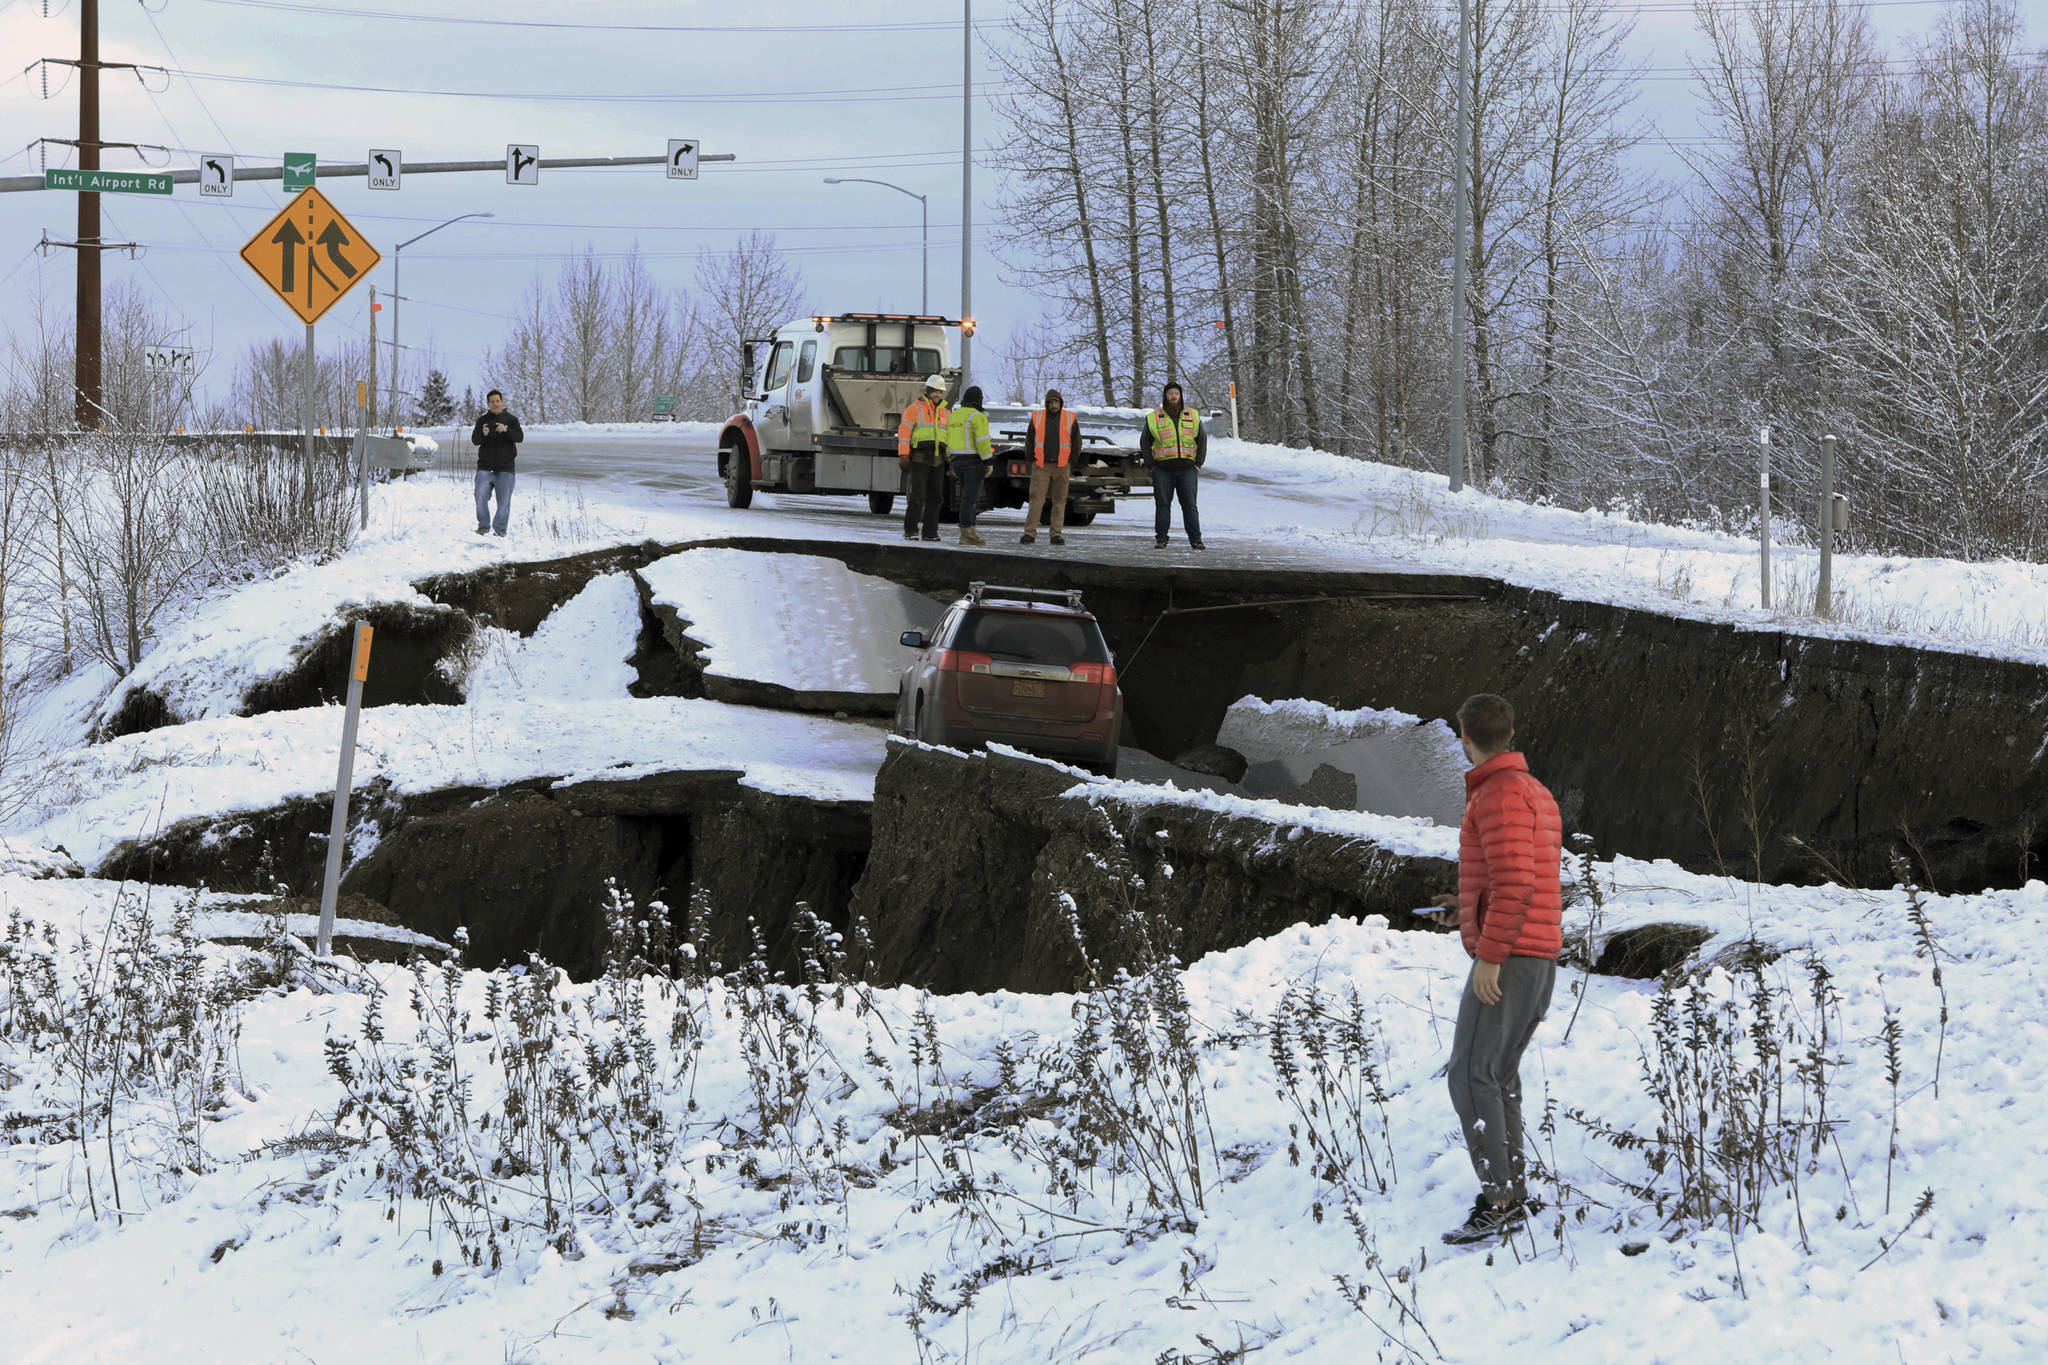 Highway workers and spectators look at a car stuck on a section of an off-ramp that collapsed during an earthquake Friday morning, Nov. 30, 2018 in Anchorage, Alaska. The driver was not injured attempting to exit Minnesota Drive at International Airport Road. Back-to-back earthquakes measuring 7.0 and 5.8 rocked buildings and buckled roads Friday morning in Anchorage, prompting people to run from their offices or seek shelter under office desks, while a tsunami warning had some seeking higher ground. (Dan Joling | Associated Press)